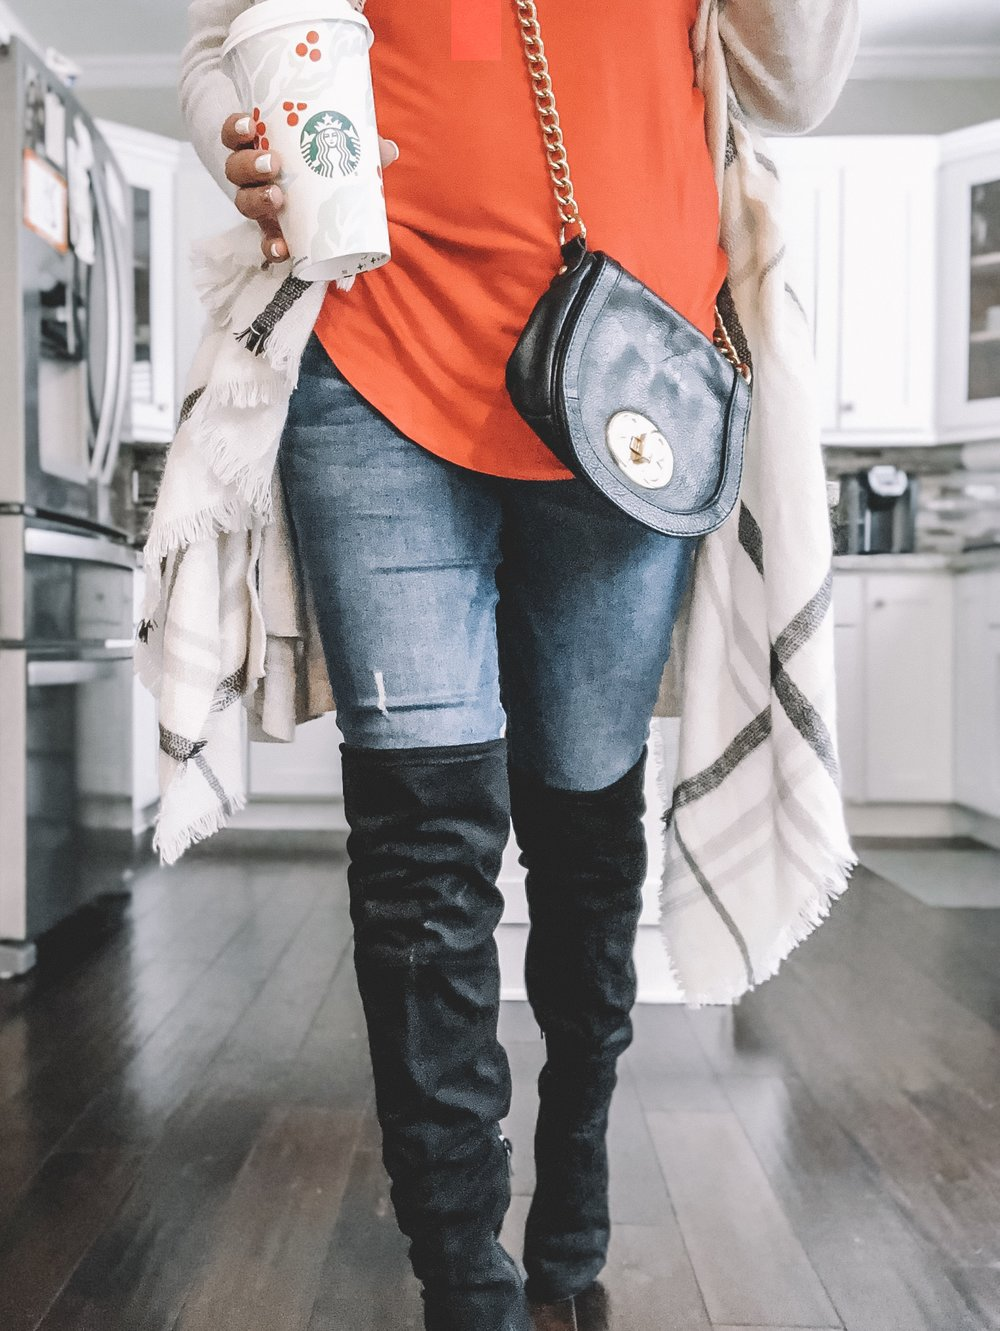 These over the knee boots are a must this season! Pair them with distressed denim or a sweater dress and you're ready for a day out!